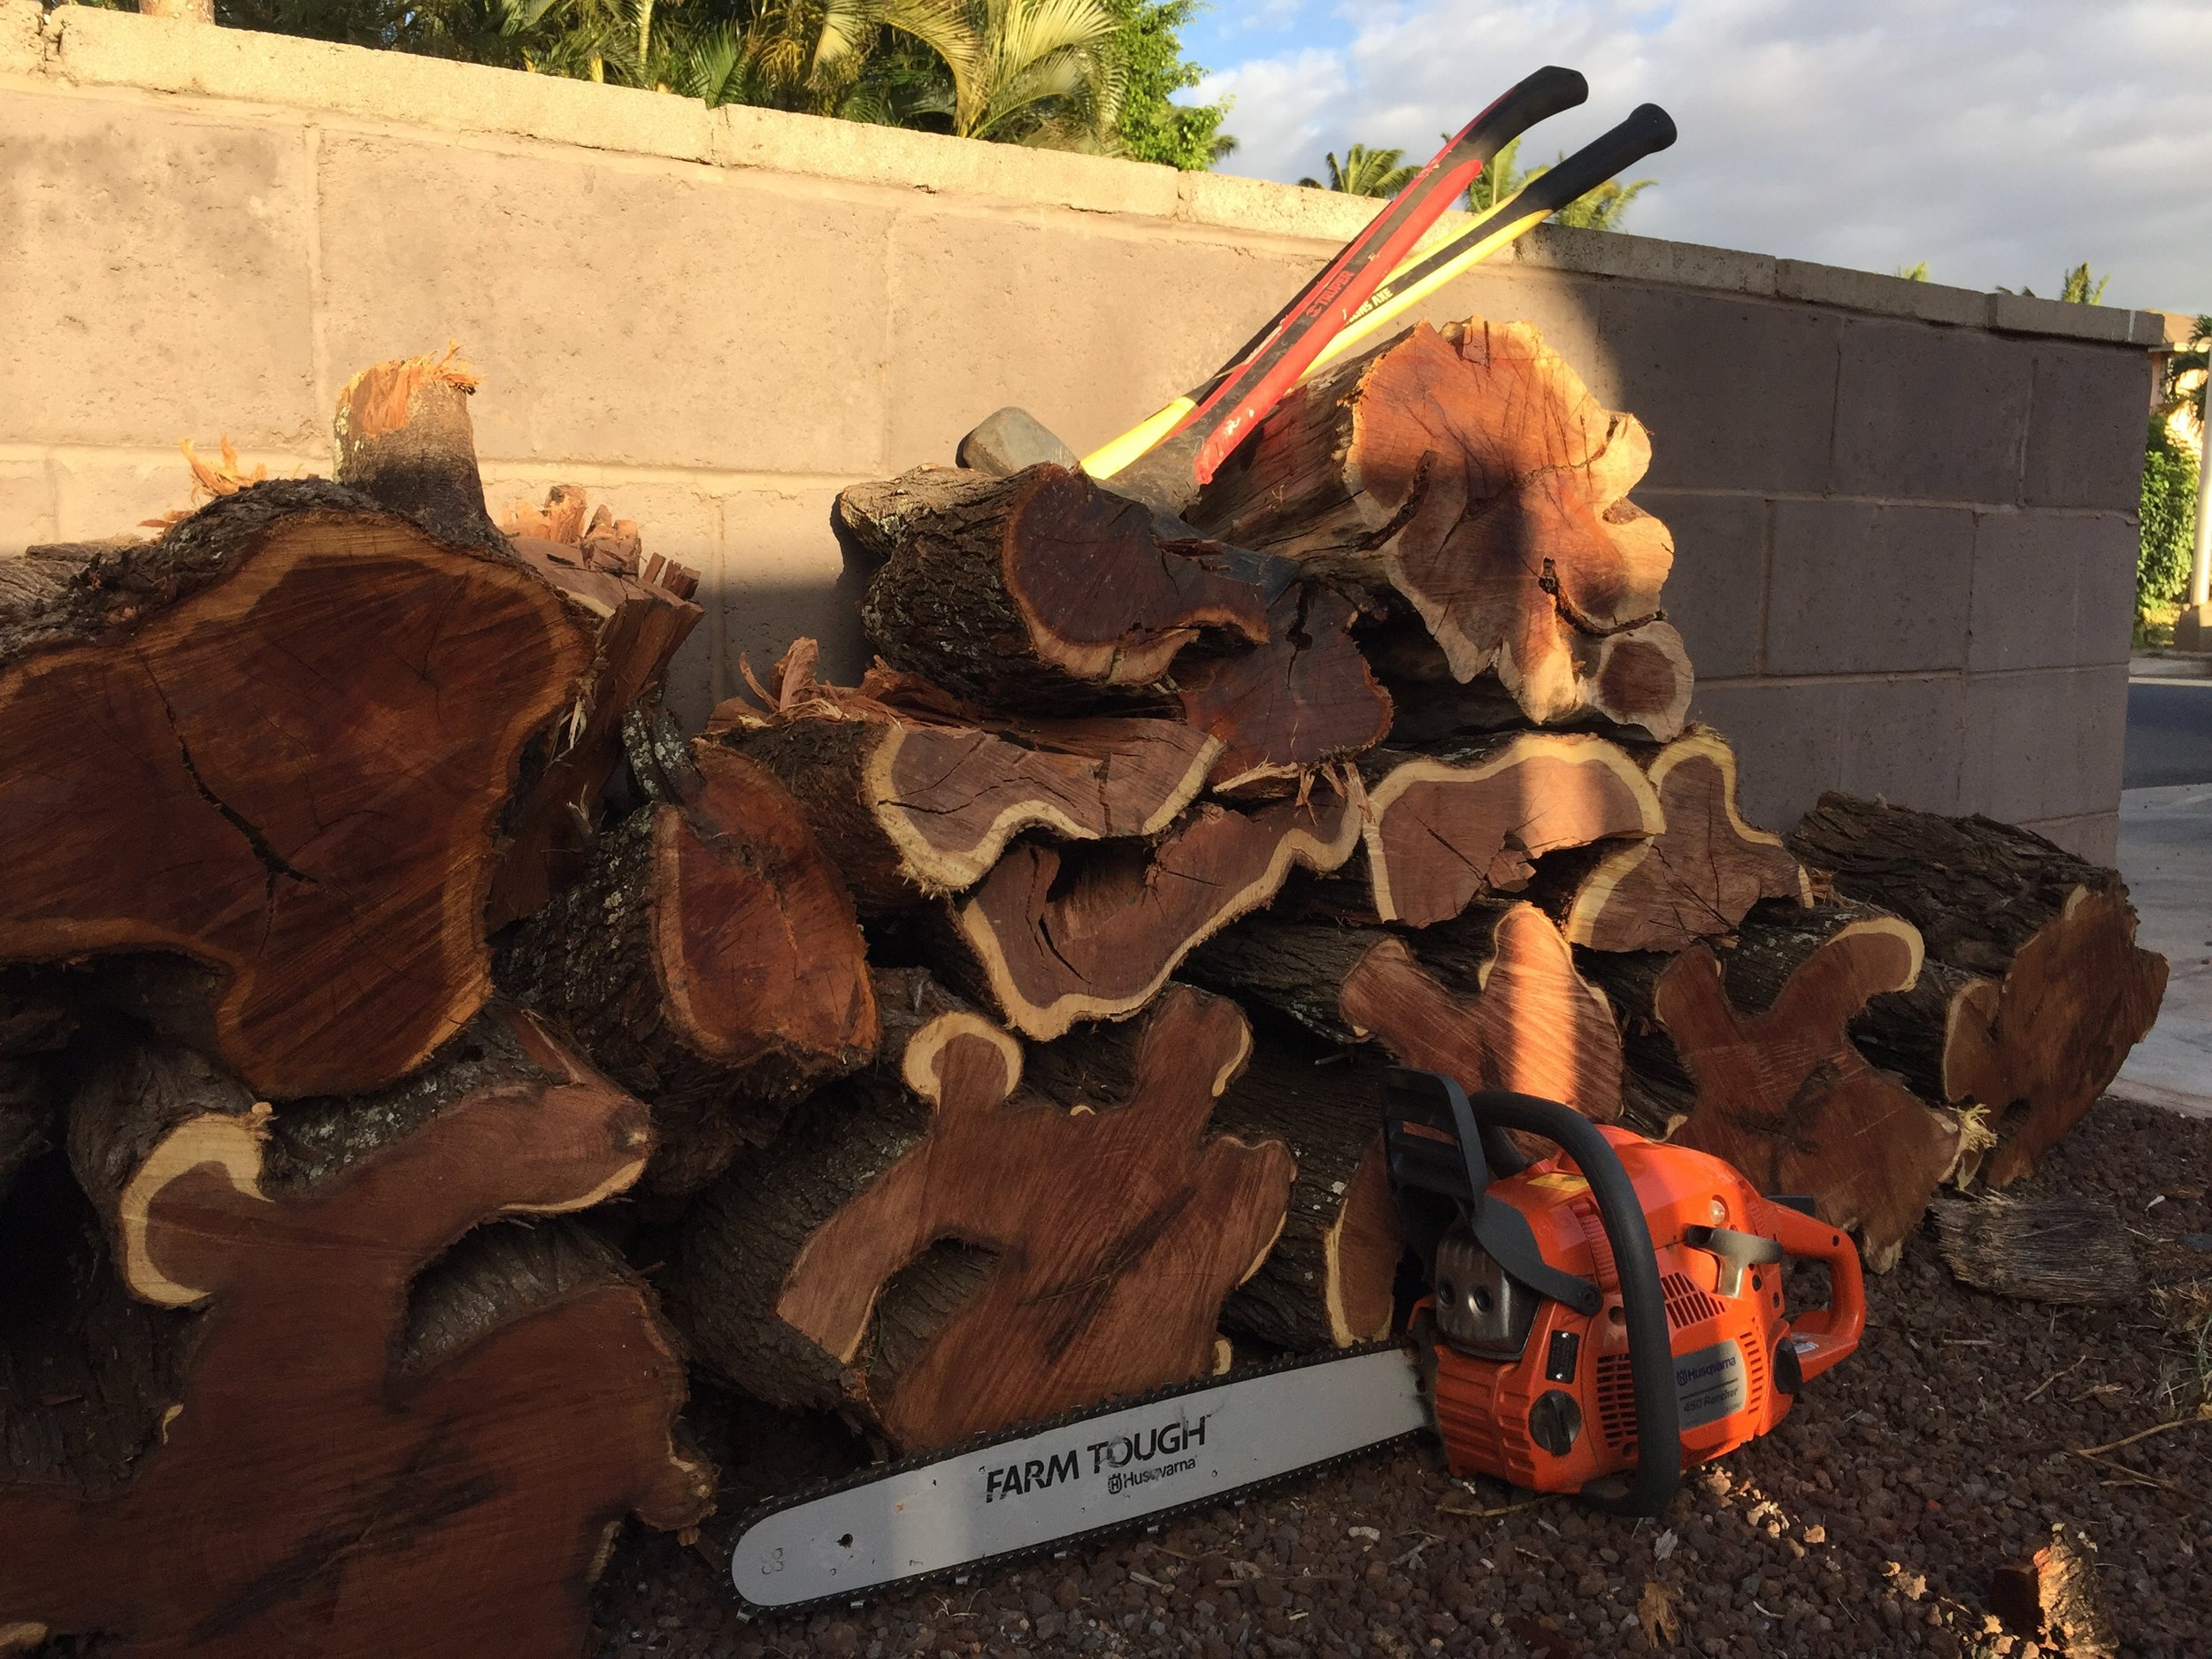 Tools of the trade. A chainsaw, a maul and a splitting axe.